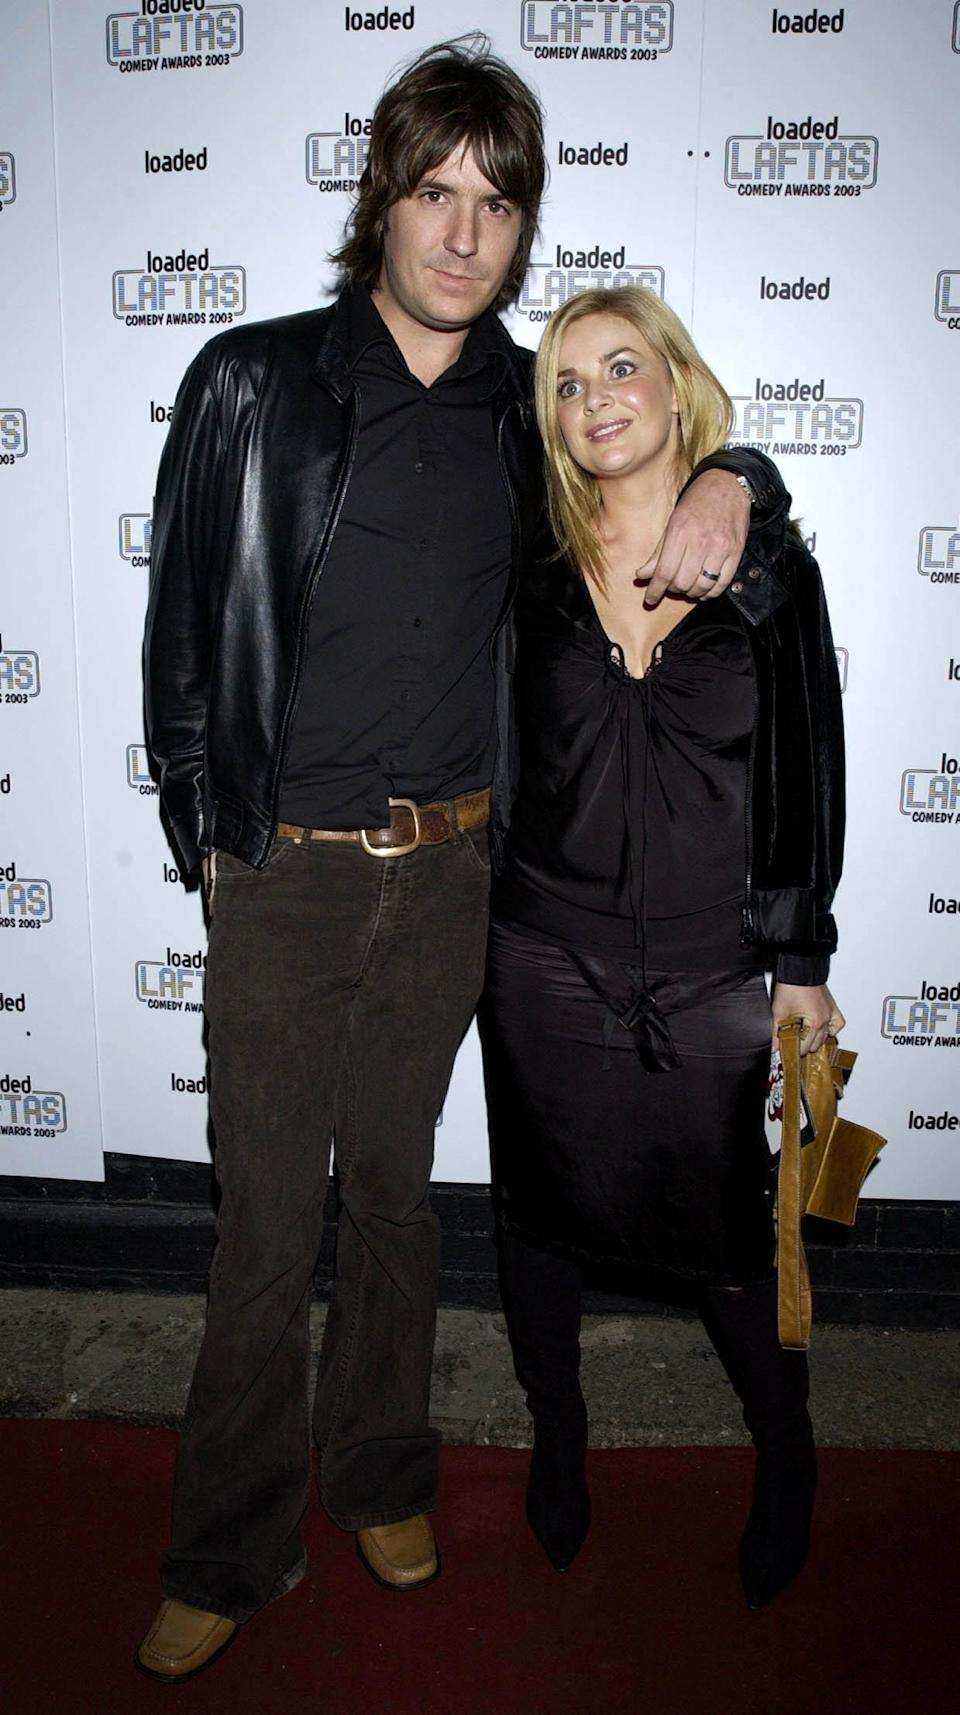 Musician Dan Hipgrave and wife Gail Porter arrive for the Loaded LAFTAS Comedy Awards 2003 at Rouge in Central London.   (Photo by Yui Mok - PA Images/PA Images via Getty Images)